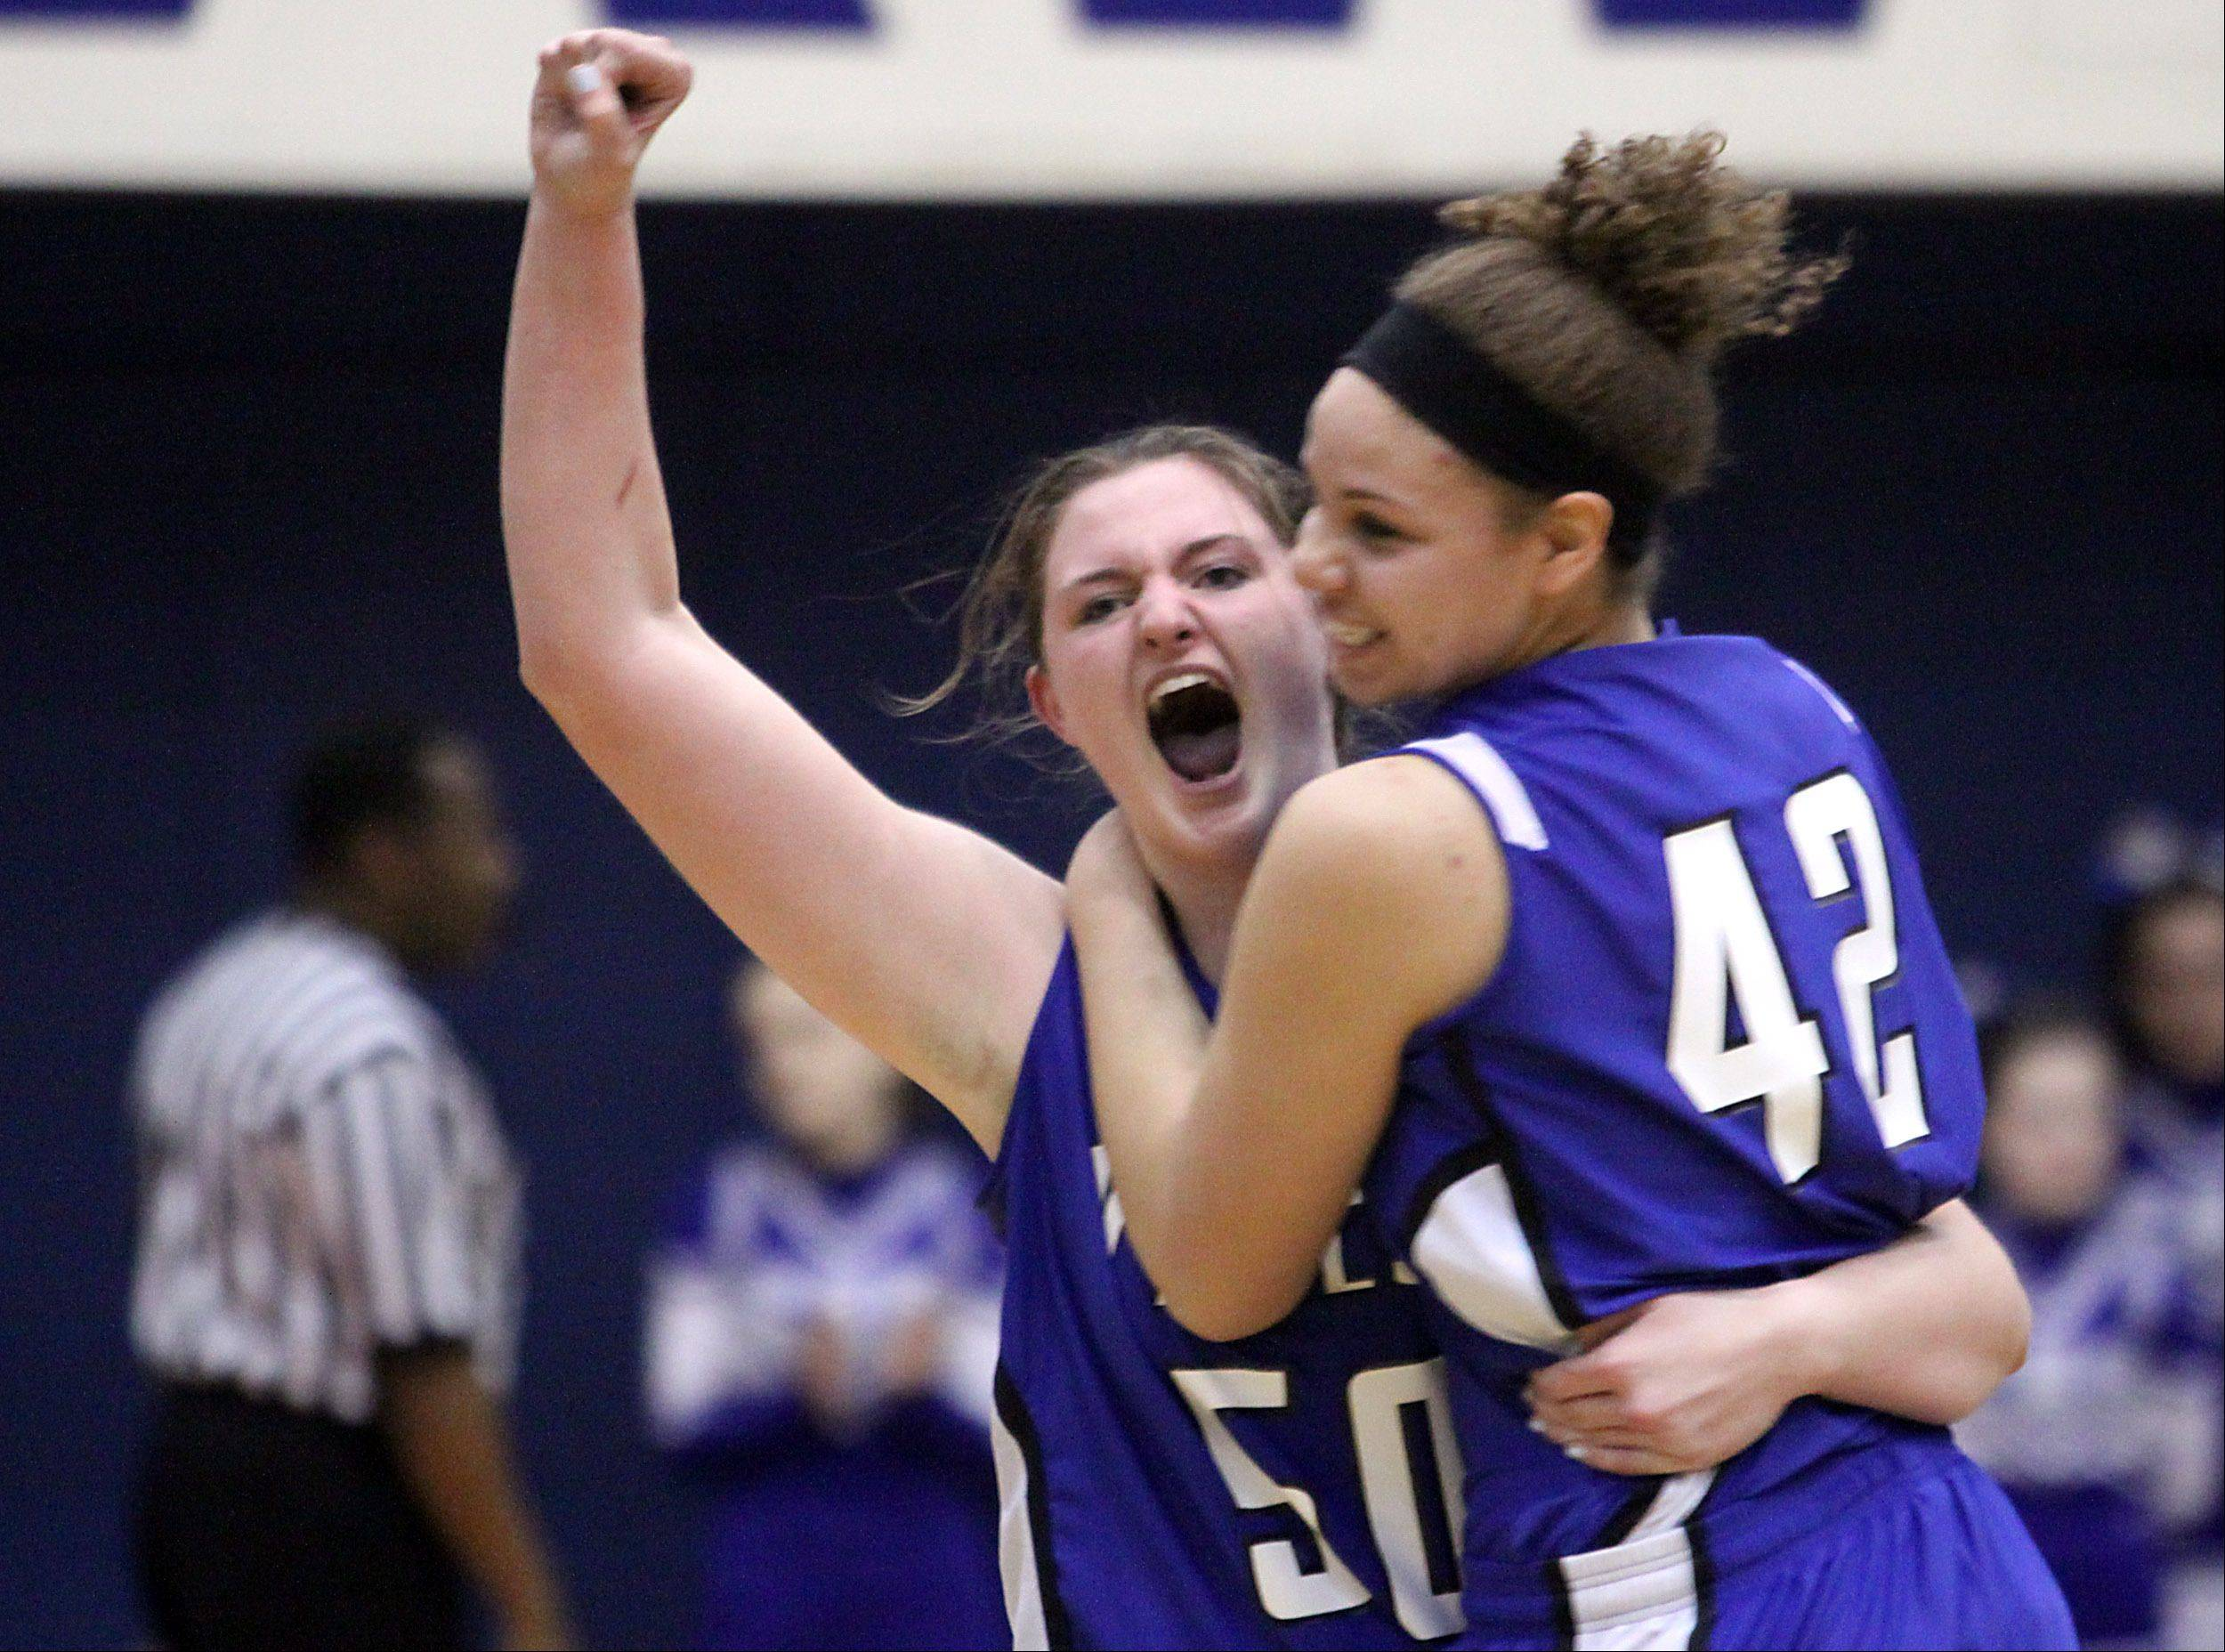 Vernon Hills' Meri Bennett-Swanson, left, and Lauren Webb celebrate their 39-31 Class 3A supersectional win over Burlington Central at Hoffman Estates High School on Monday night.